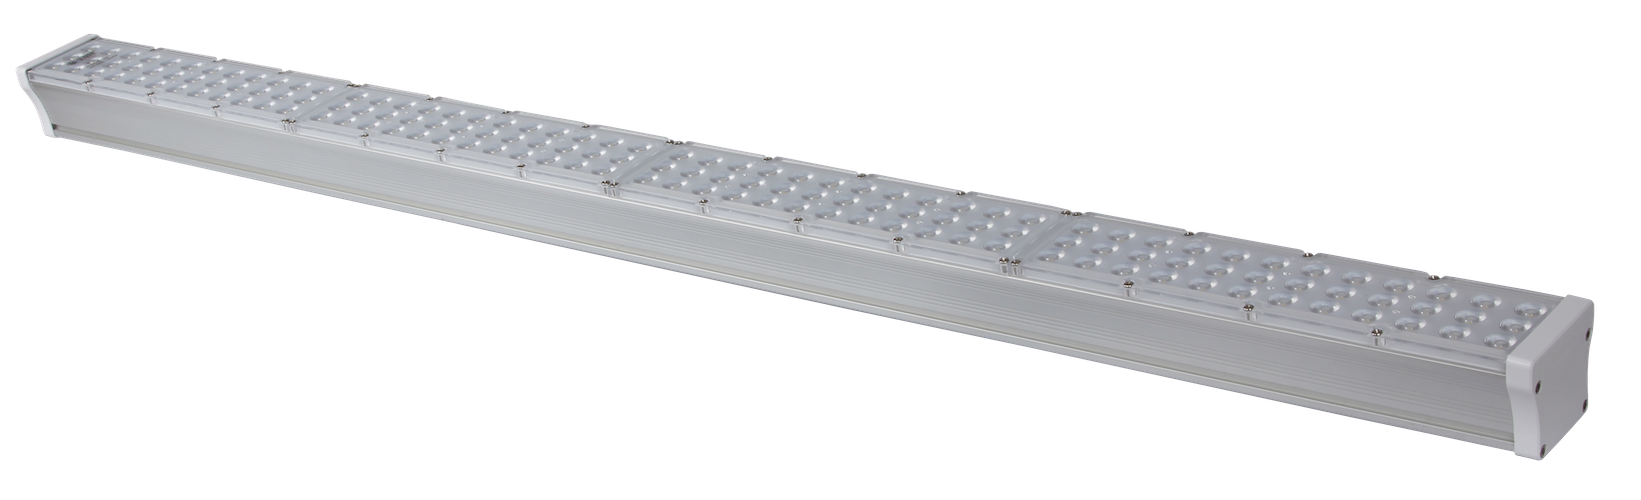 20w LED Linear light